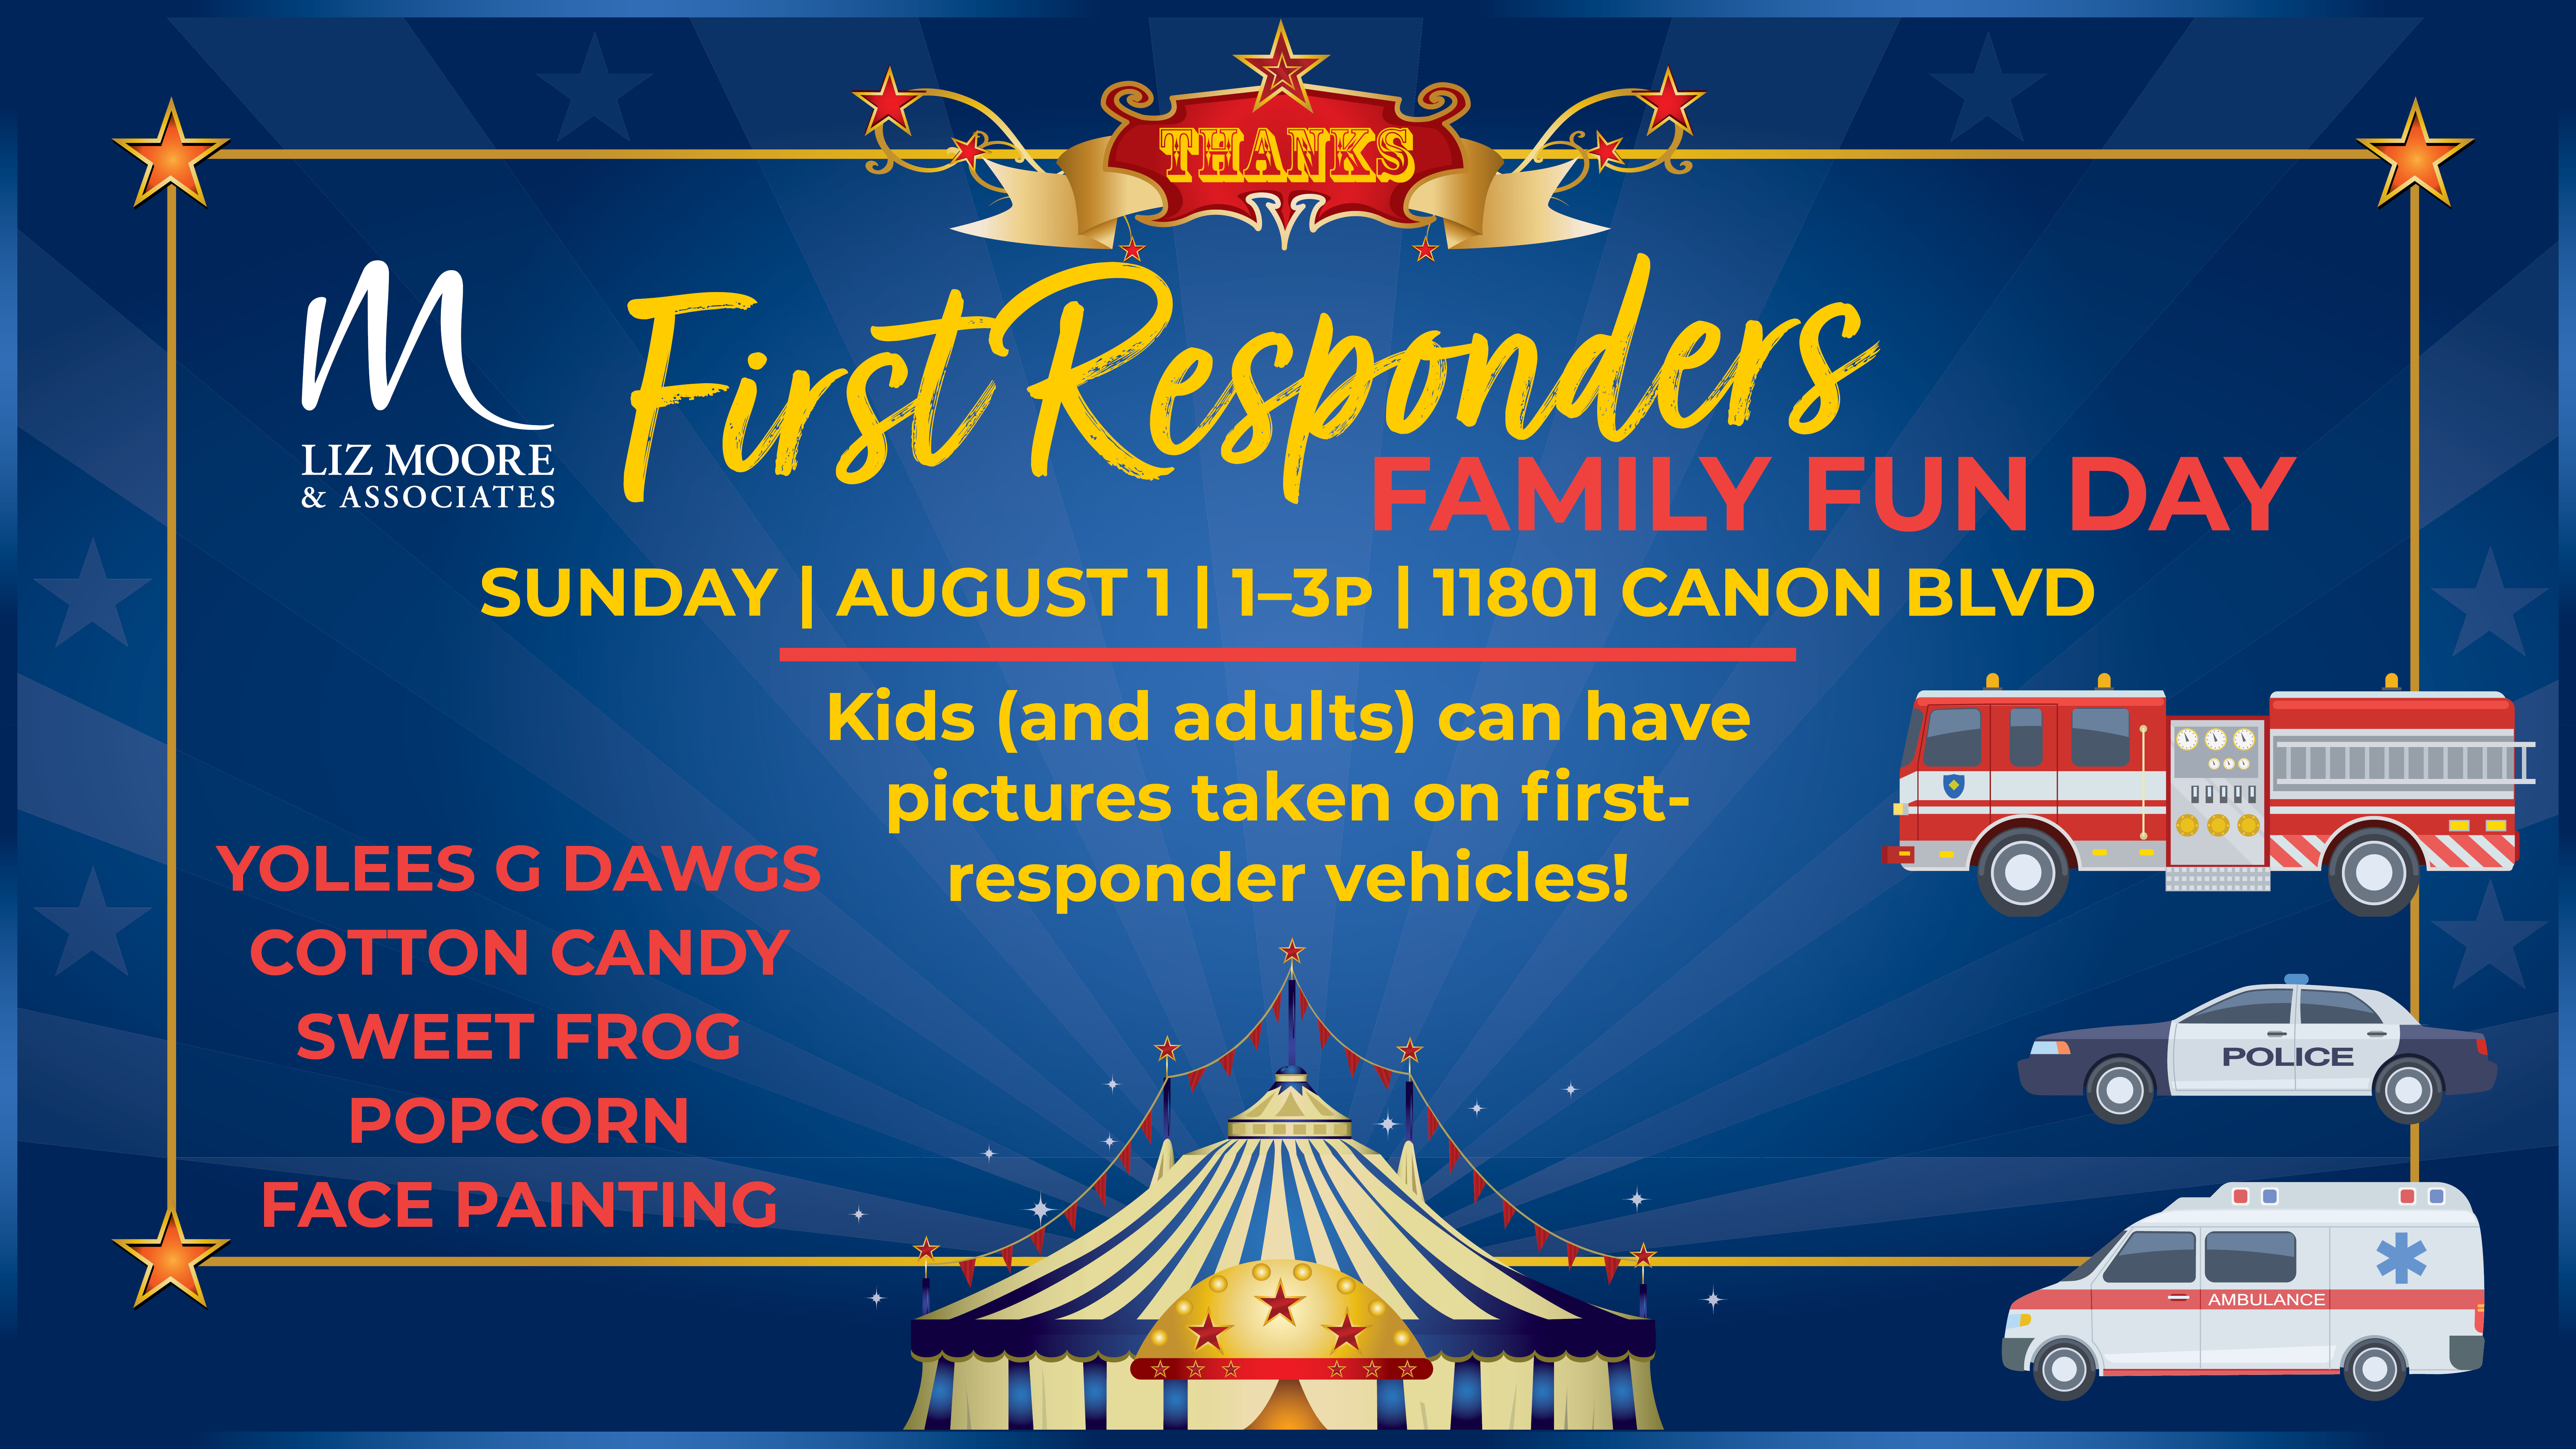 First Responders Family Fun Day - August 1, 2021